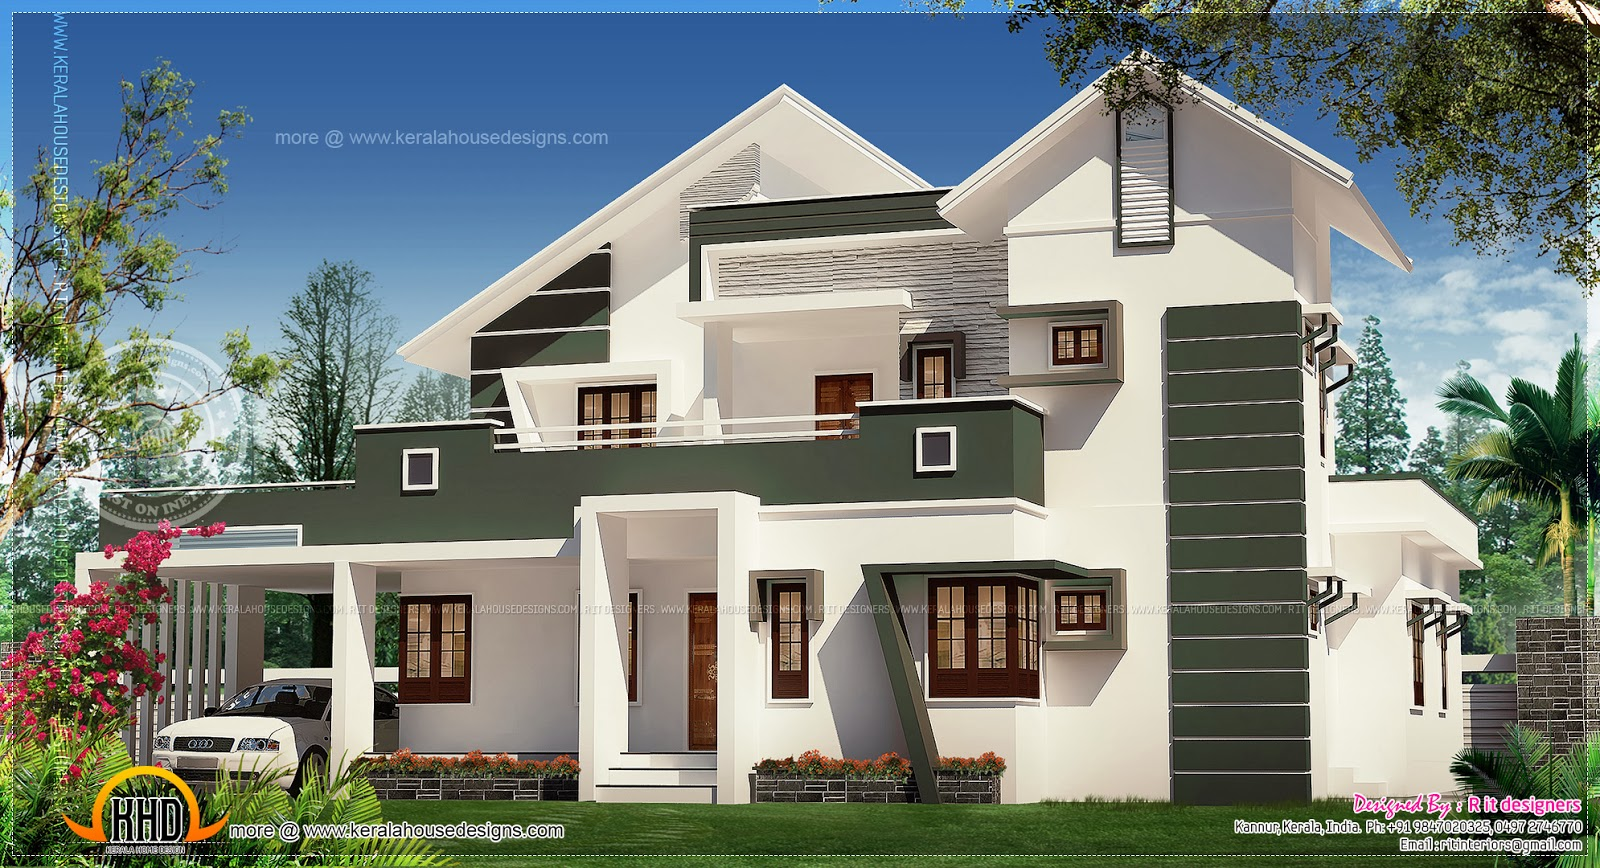 Luxury modern villa elevation kerala home design and Modern villa plan